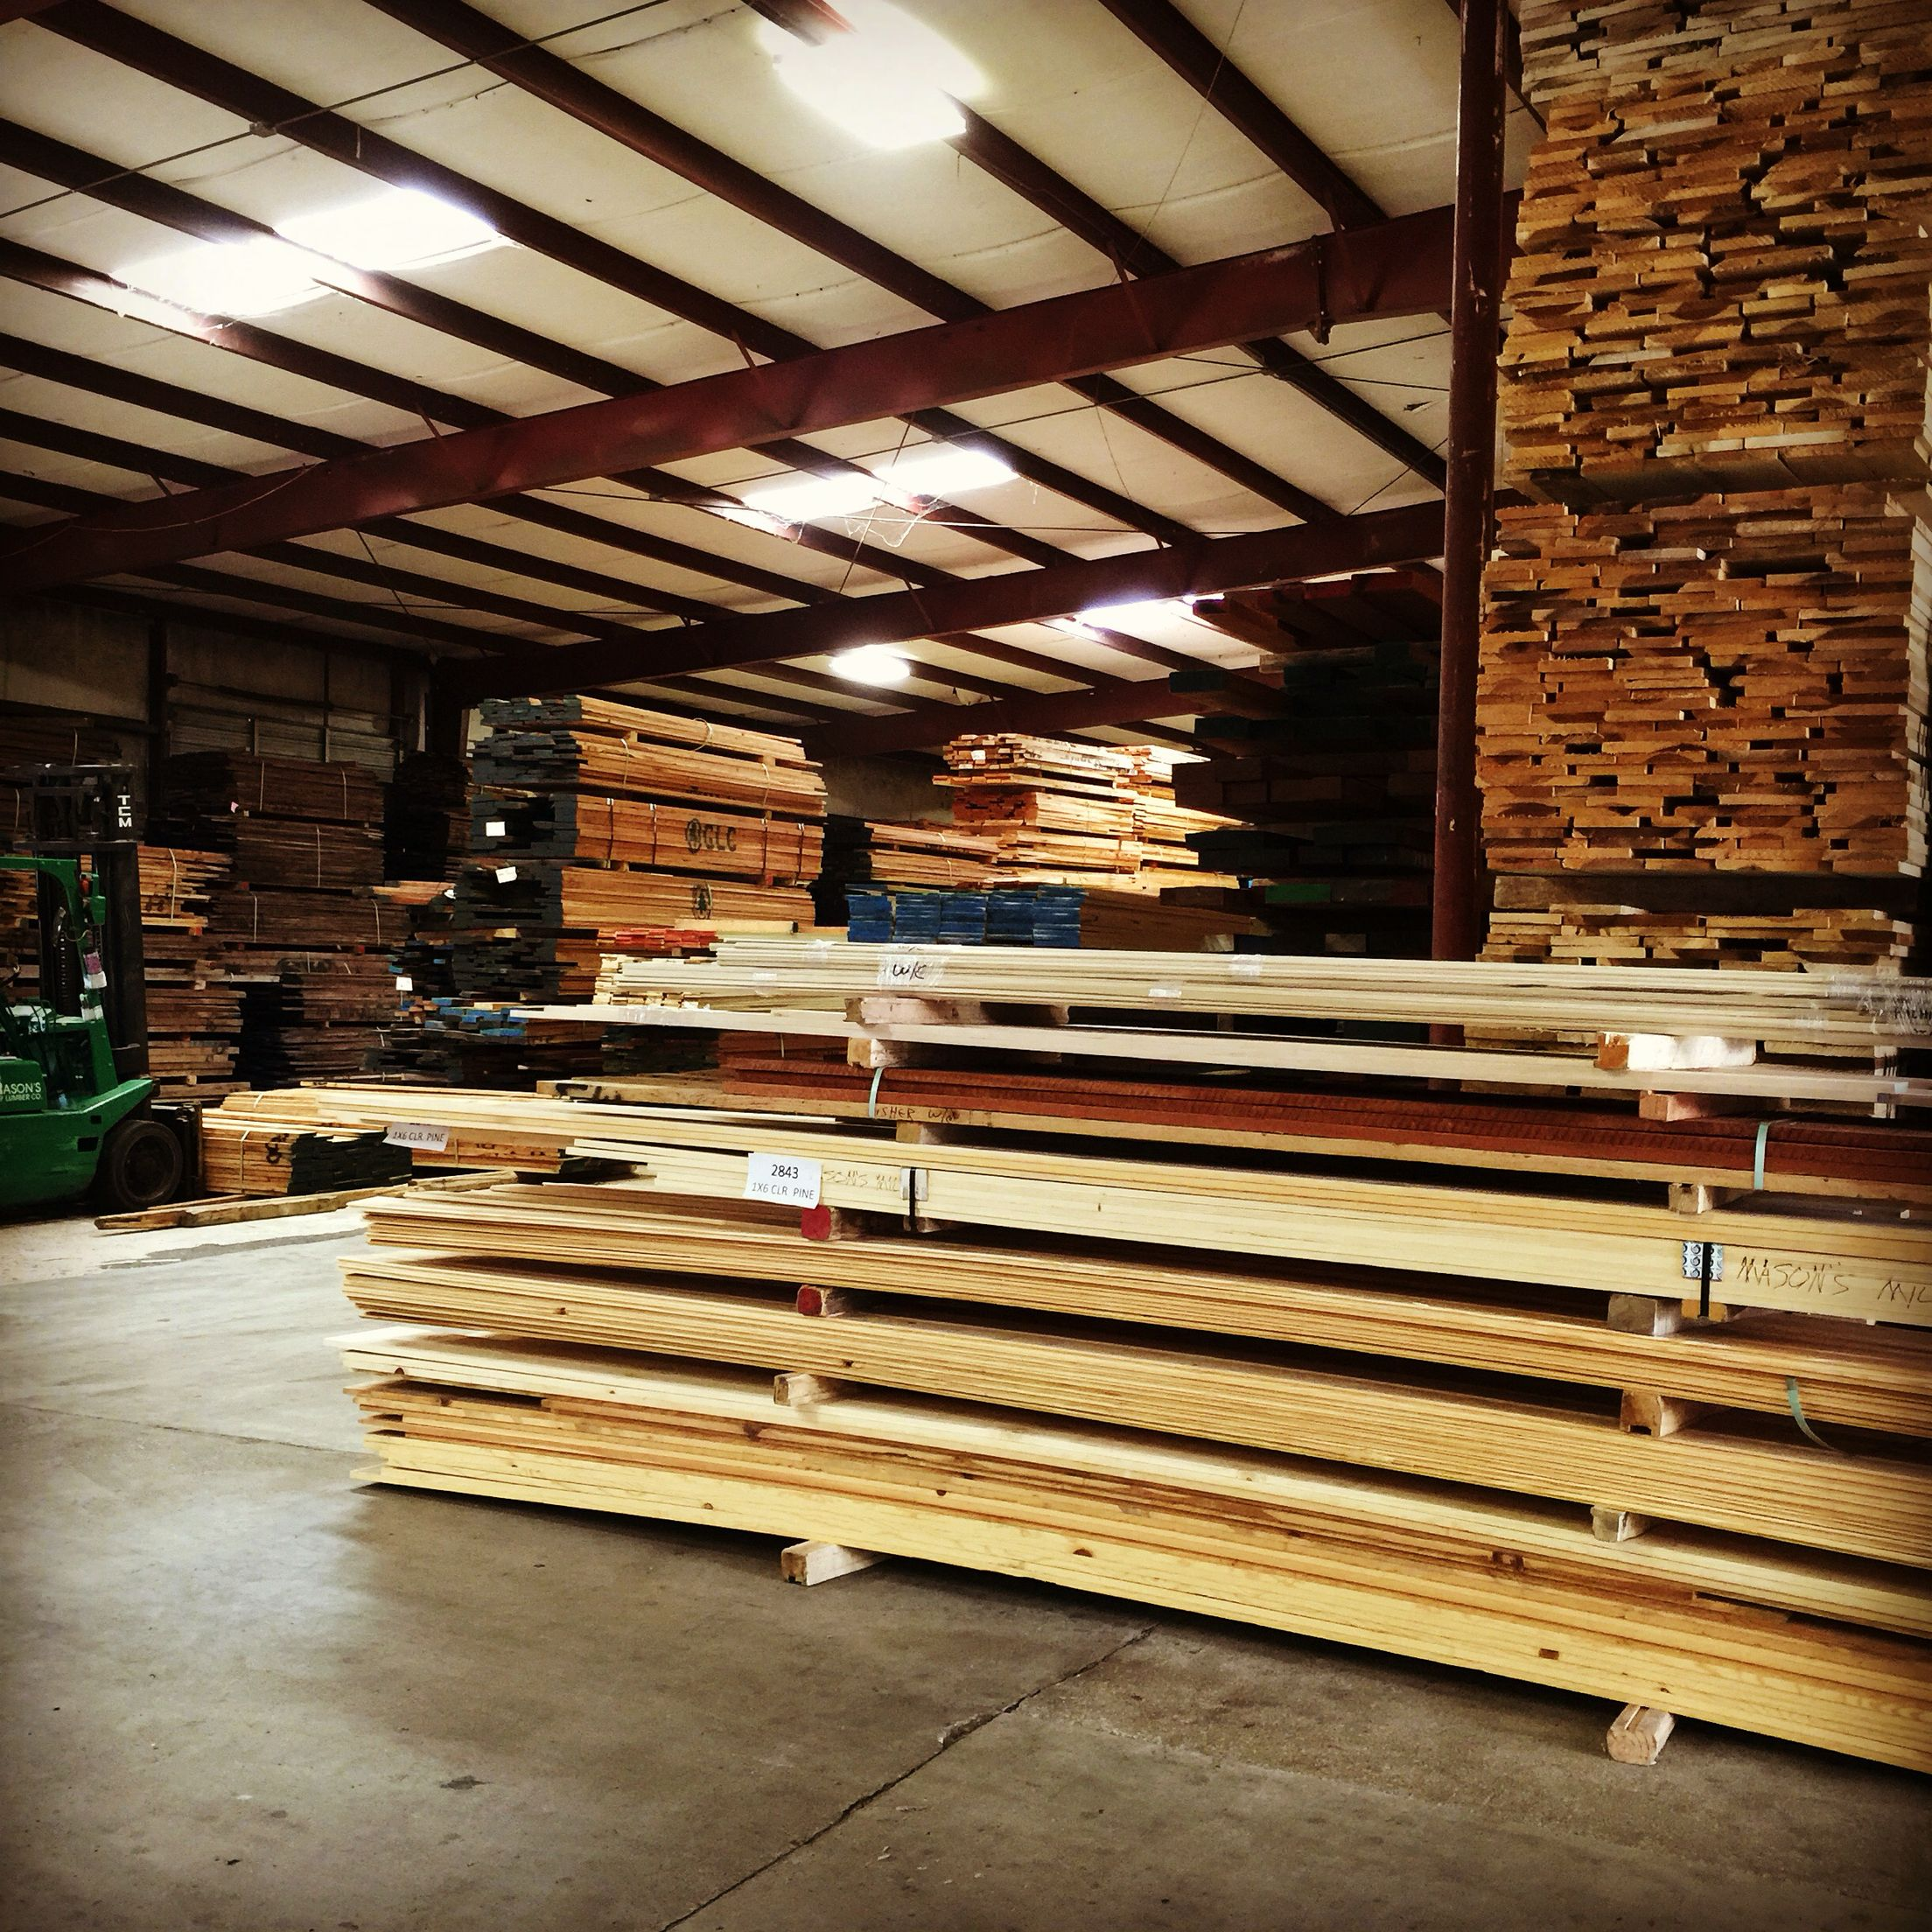 I was at the lumber yard earlier picking up some ash wood.  #wood #woodworking   #woodworker #woodshop #lumberyard #roughlumber #ashwood